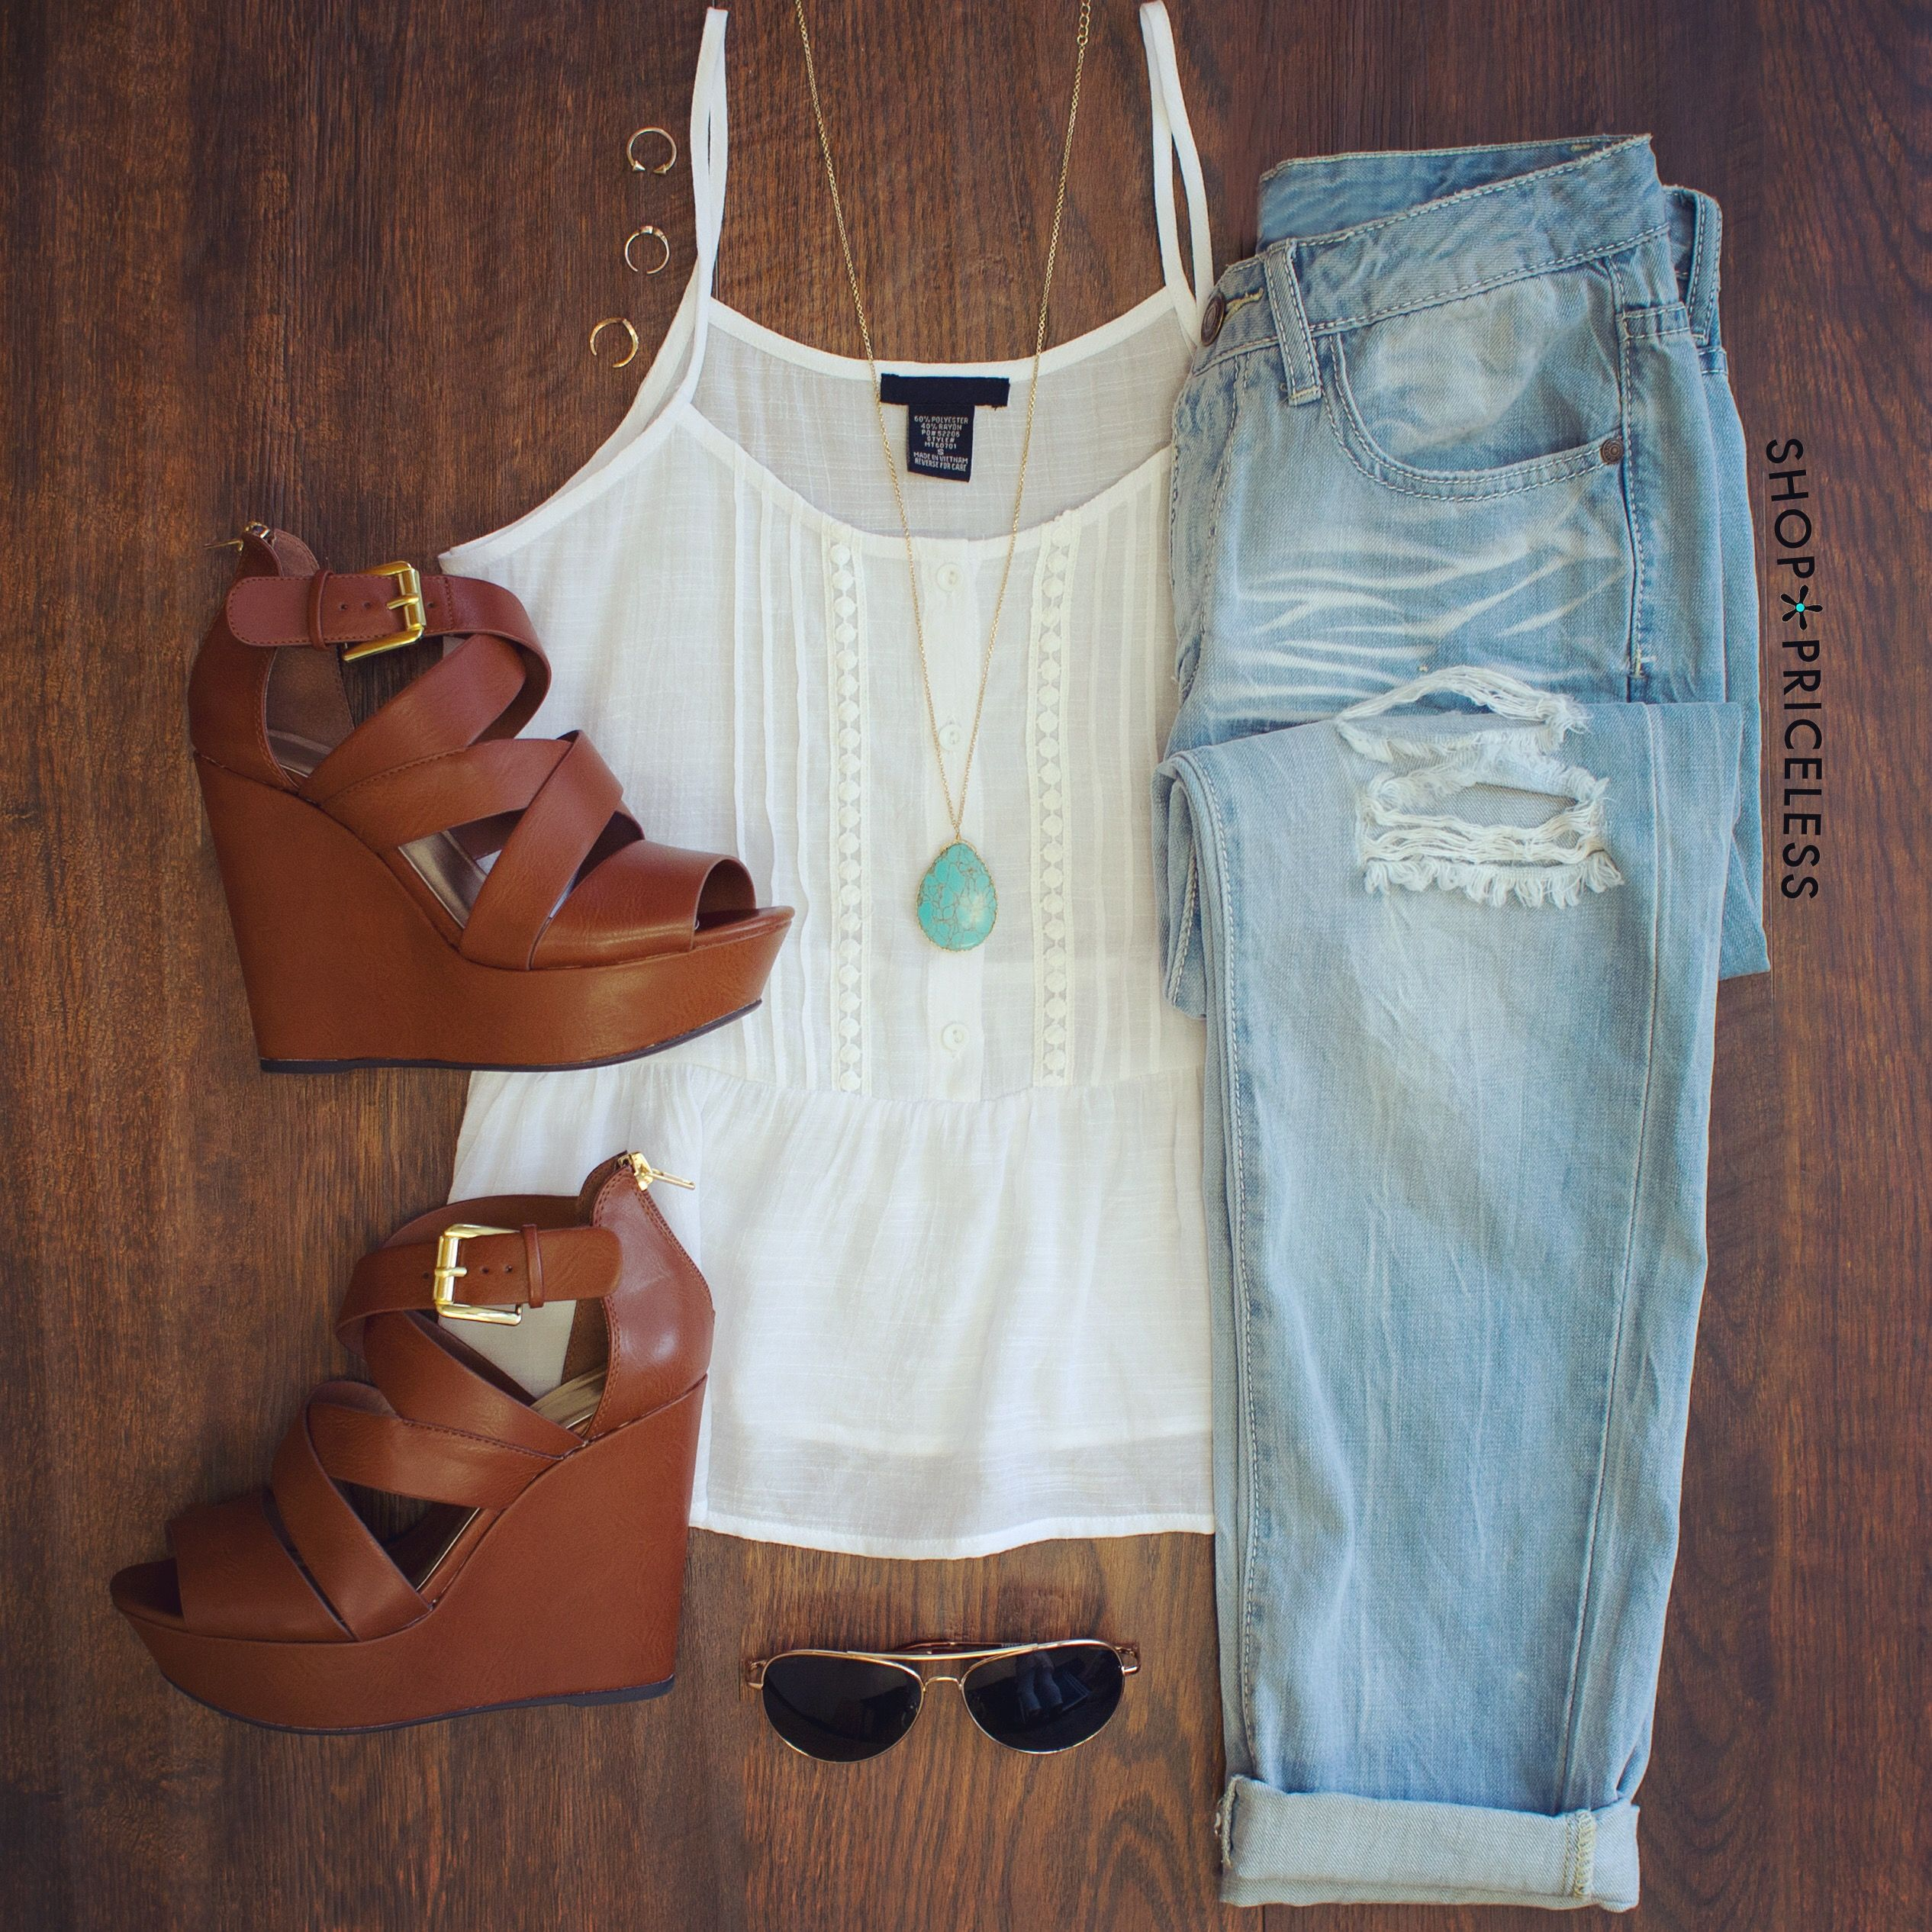 I love everything about this outfit... even the distressed jeans which is unusual for me to like.